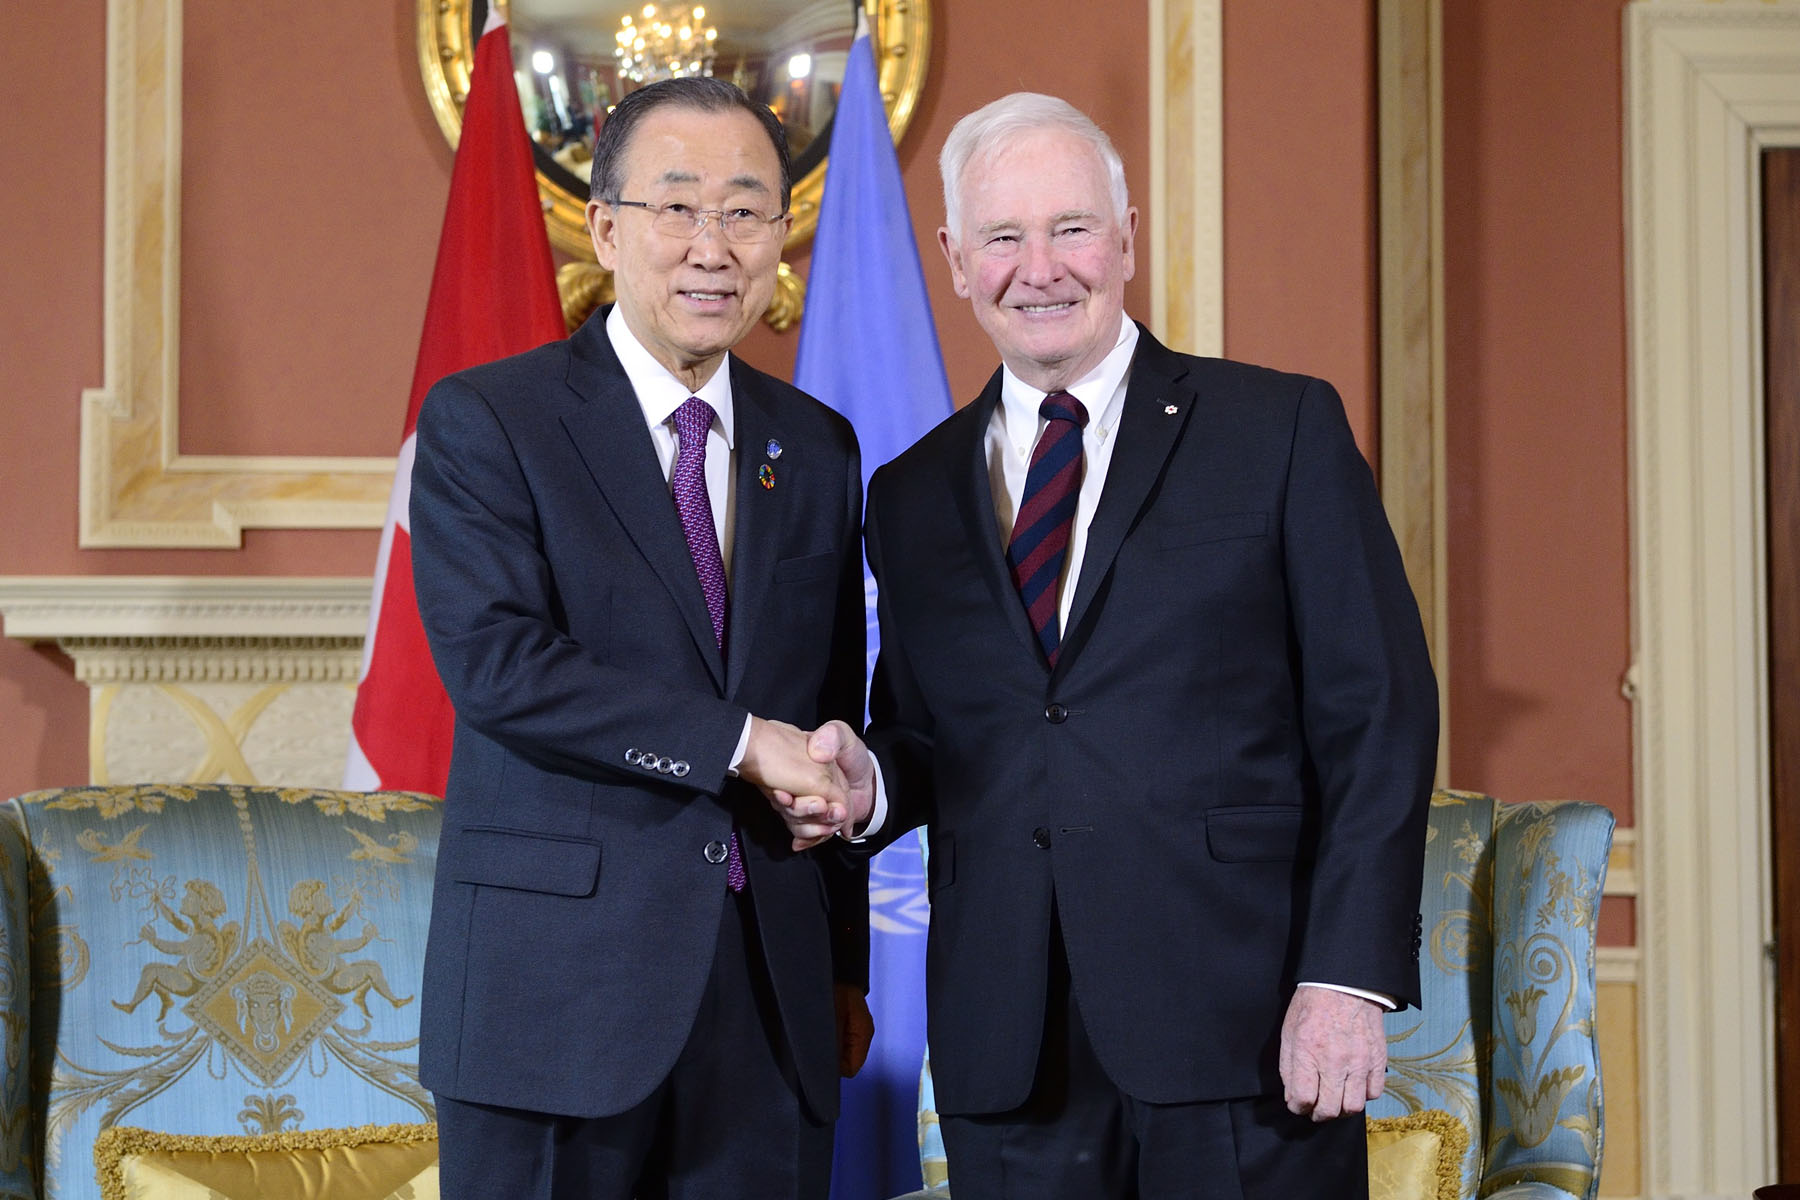 On February 12, 2016, His Excellency the Right Honourable David Johnston, Governor General of Canada, welcomed His Excellency Ban Ki-moon, United Nations Secretary-General, at Rideau Hall.